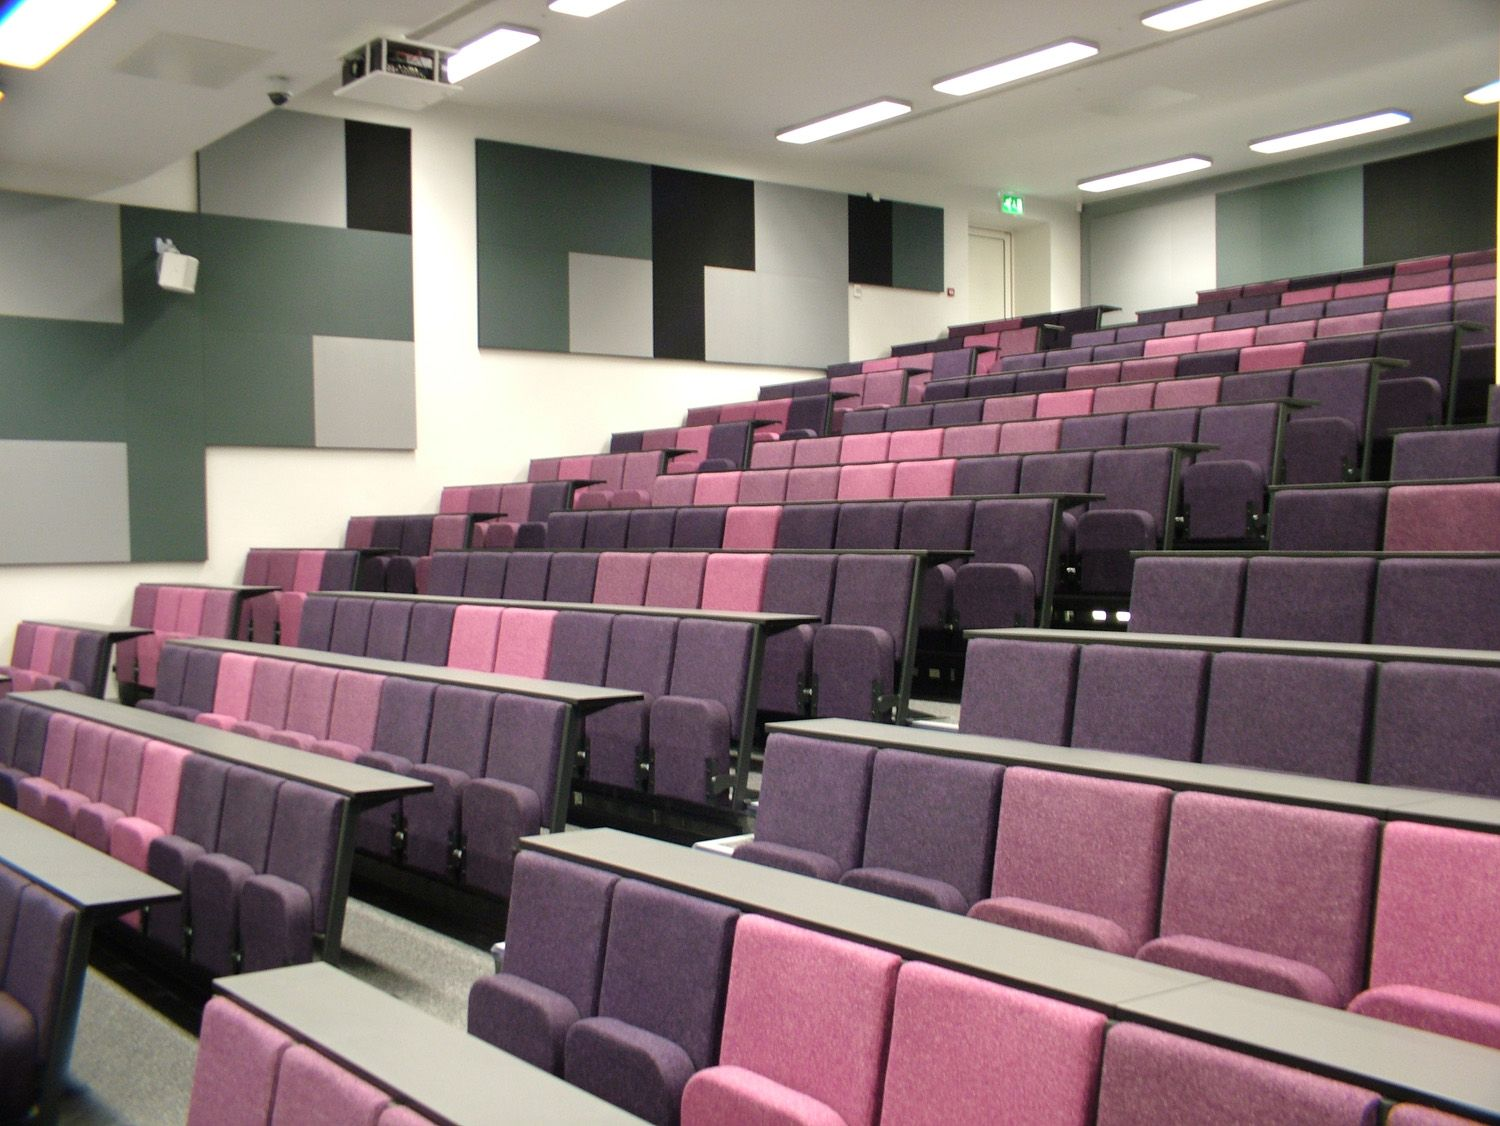 Diploma Lecture Theatre Chairs Tiered seating, Lecture